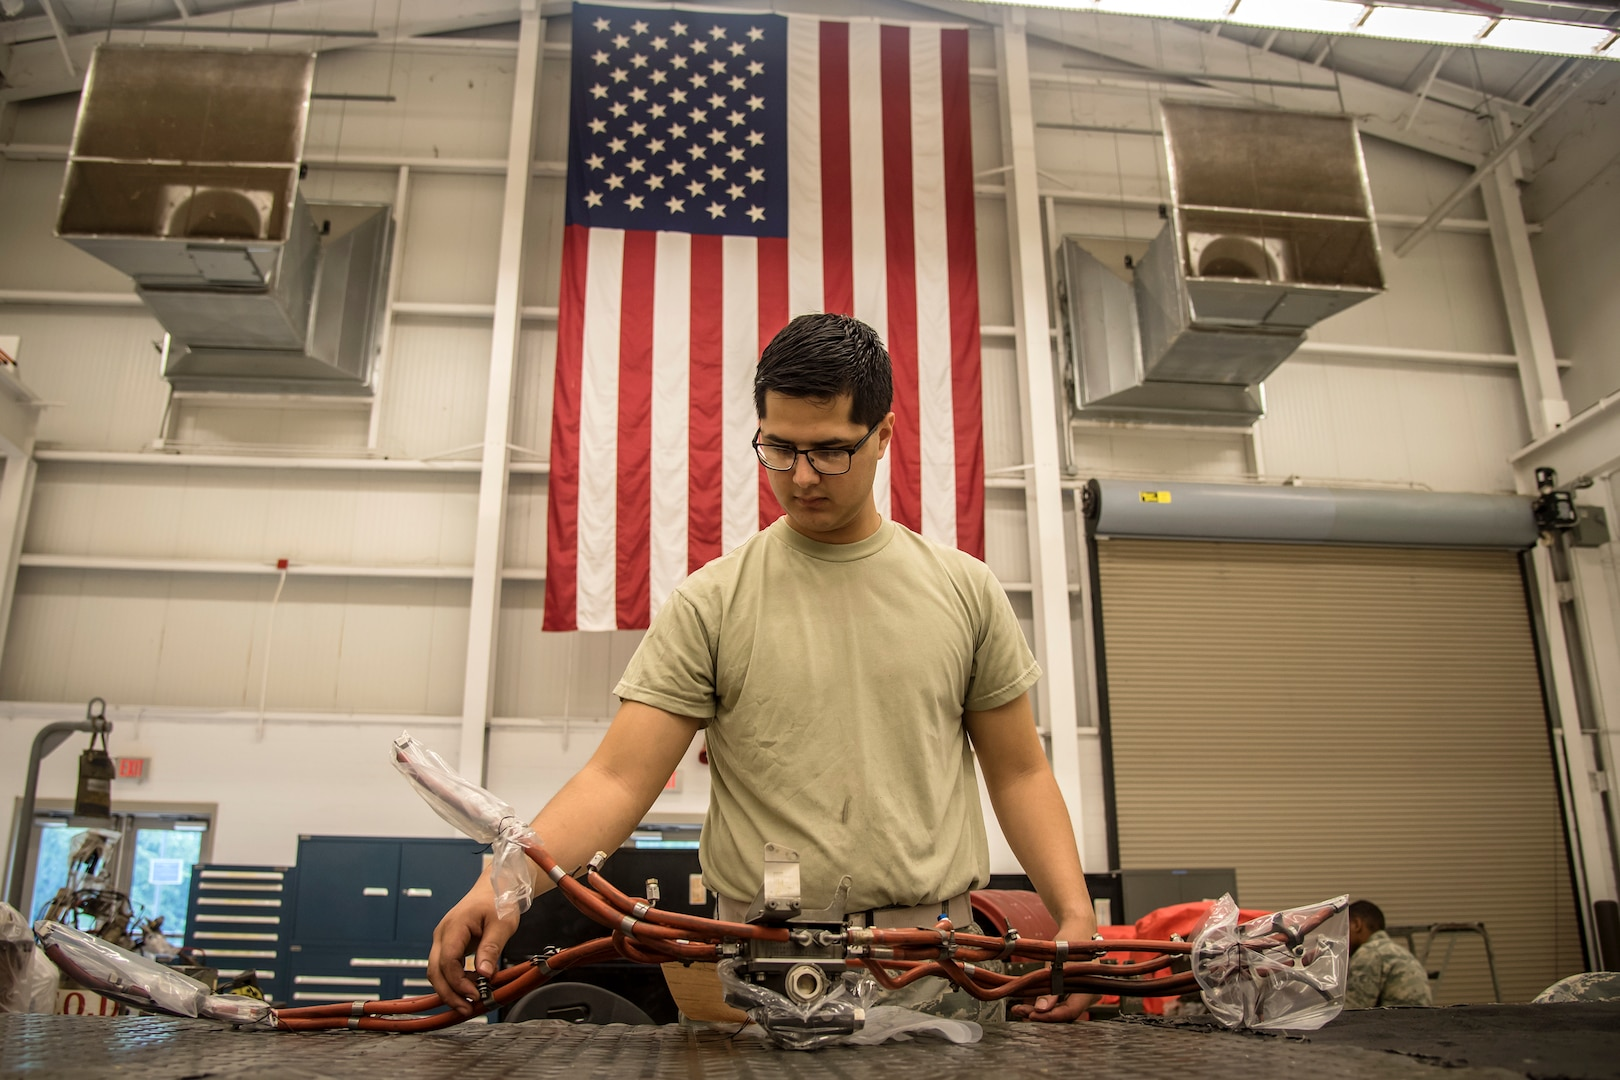 Airman 1st Class Jordan Vasquez, 23d Maintenance Squadron (MXS) aerospace propulsion technician, inspects the fuel lines of a Turbo-Fan (TF)-34 engine, May 16, 2018, at Moody Air Force Base, Ga. The 23d MXS propulsion flight's mission is to ensure that the A-10C Thunderbolt II TF-34 engine is in satisfactory condition before it's even installed on the aircraft. This flight is responsible for the overall upkeep and maintenance of all TF-34 engines for the Air Force's largest operational A-10 fighter group. (U.S. Air Force Base photo by Airman 1st Class Eugene Oliver)